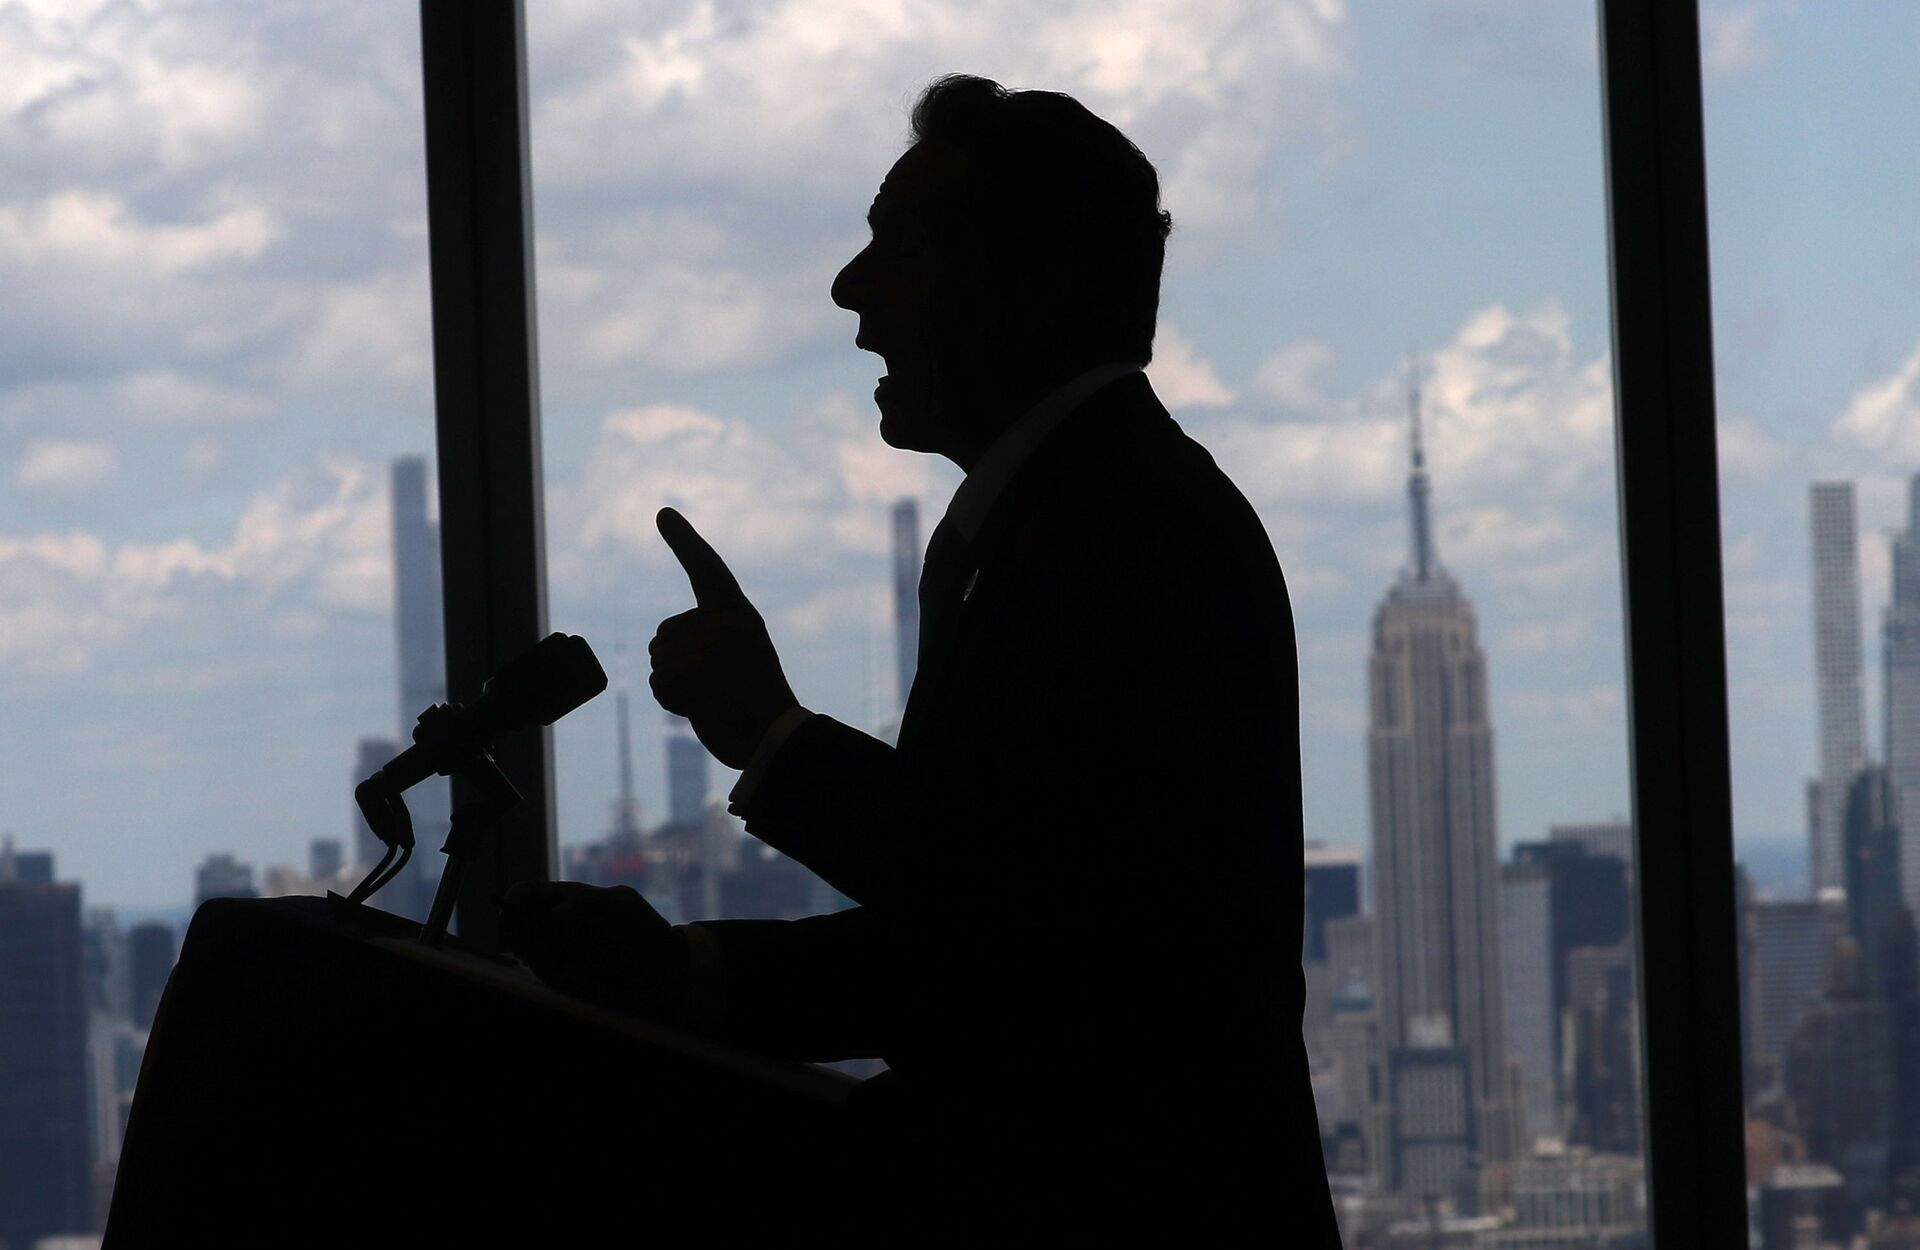 New York Governor Andrew Cuomo speaks with the skyline of Manhattan behind him from the One World Trade Center Tower while making an announcement in New York City, New York, U.S., June 15, 2021. - Sputnik International, 1920, 07.09.2021